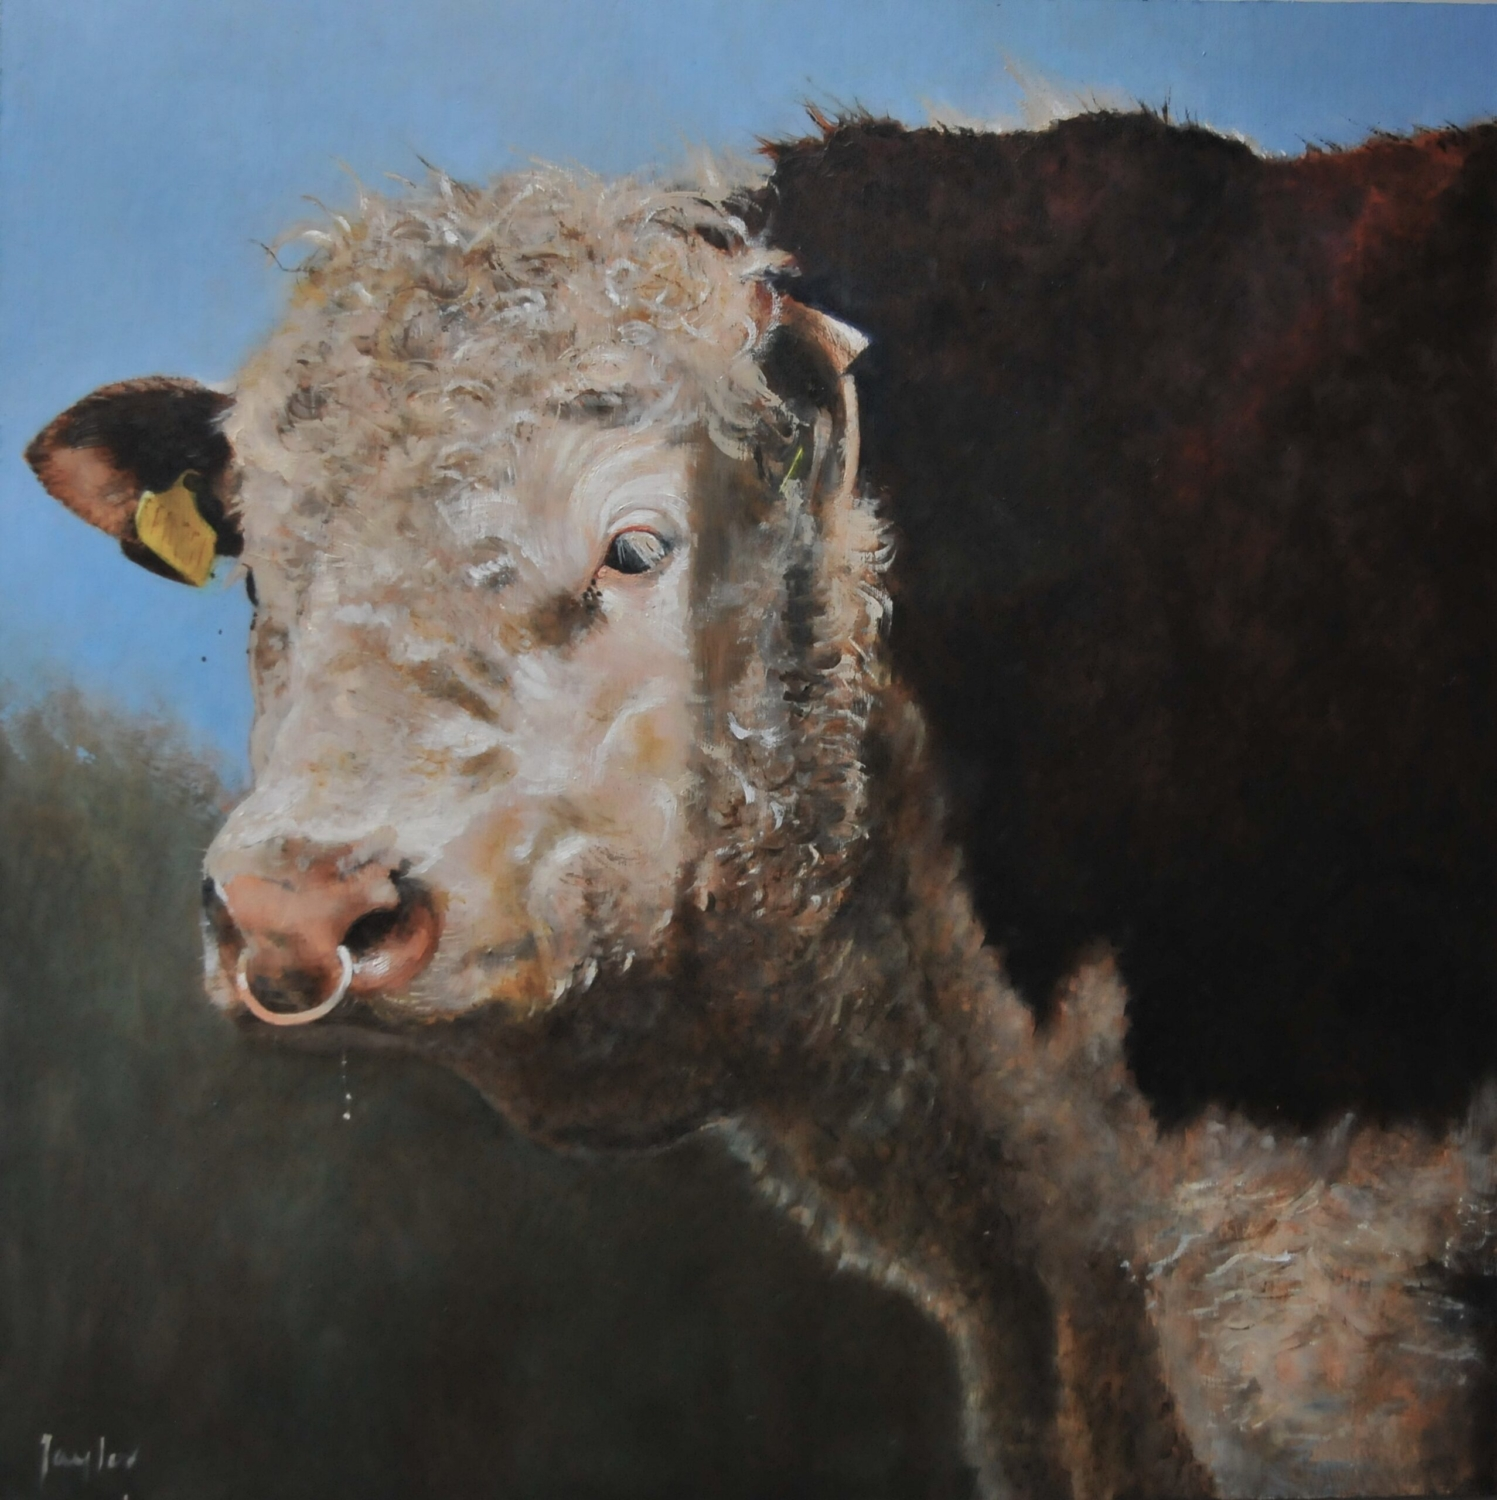 Oil painting of a bull seen on the banks of the River Stour